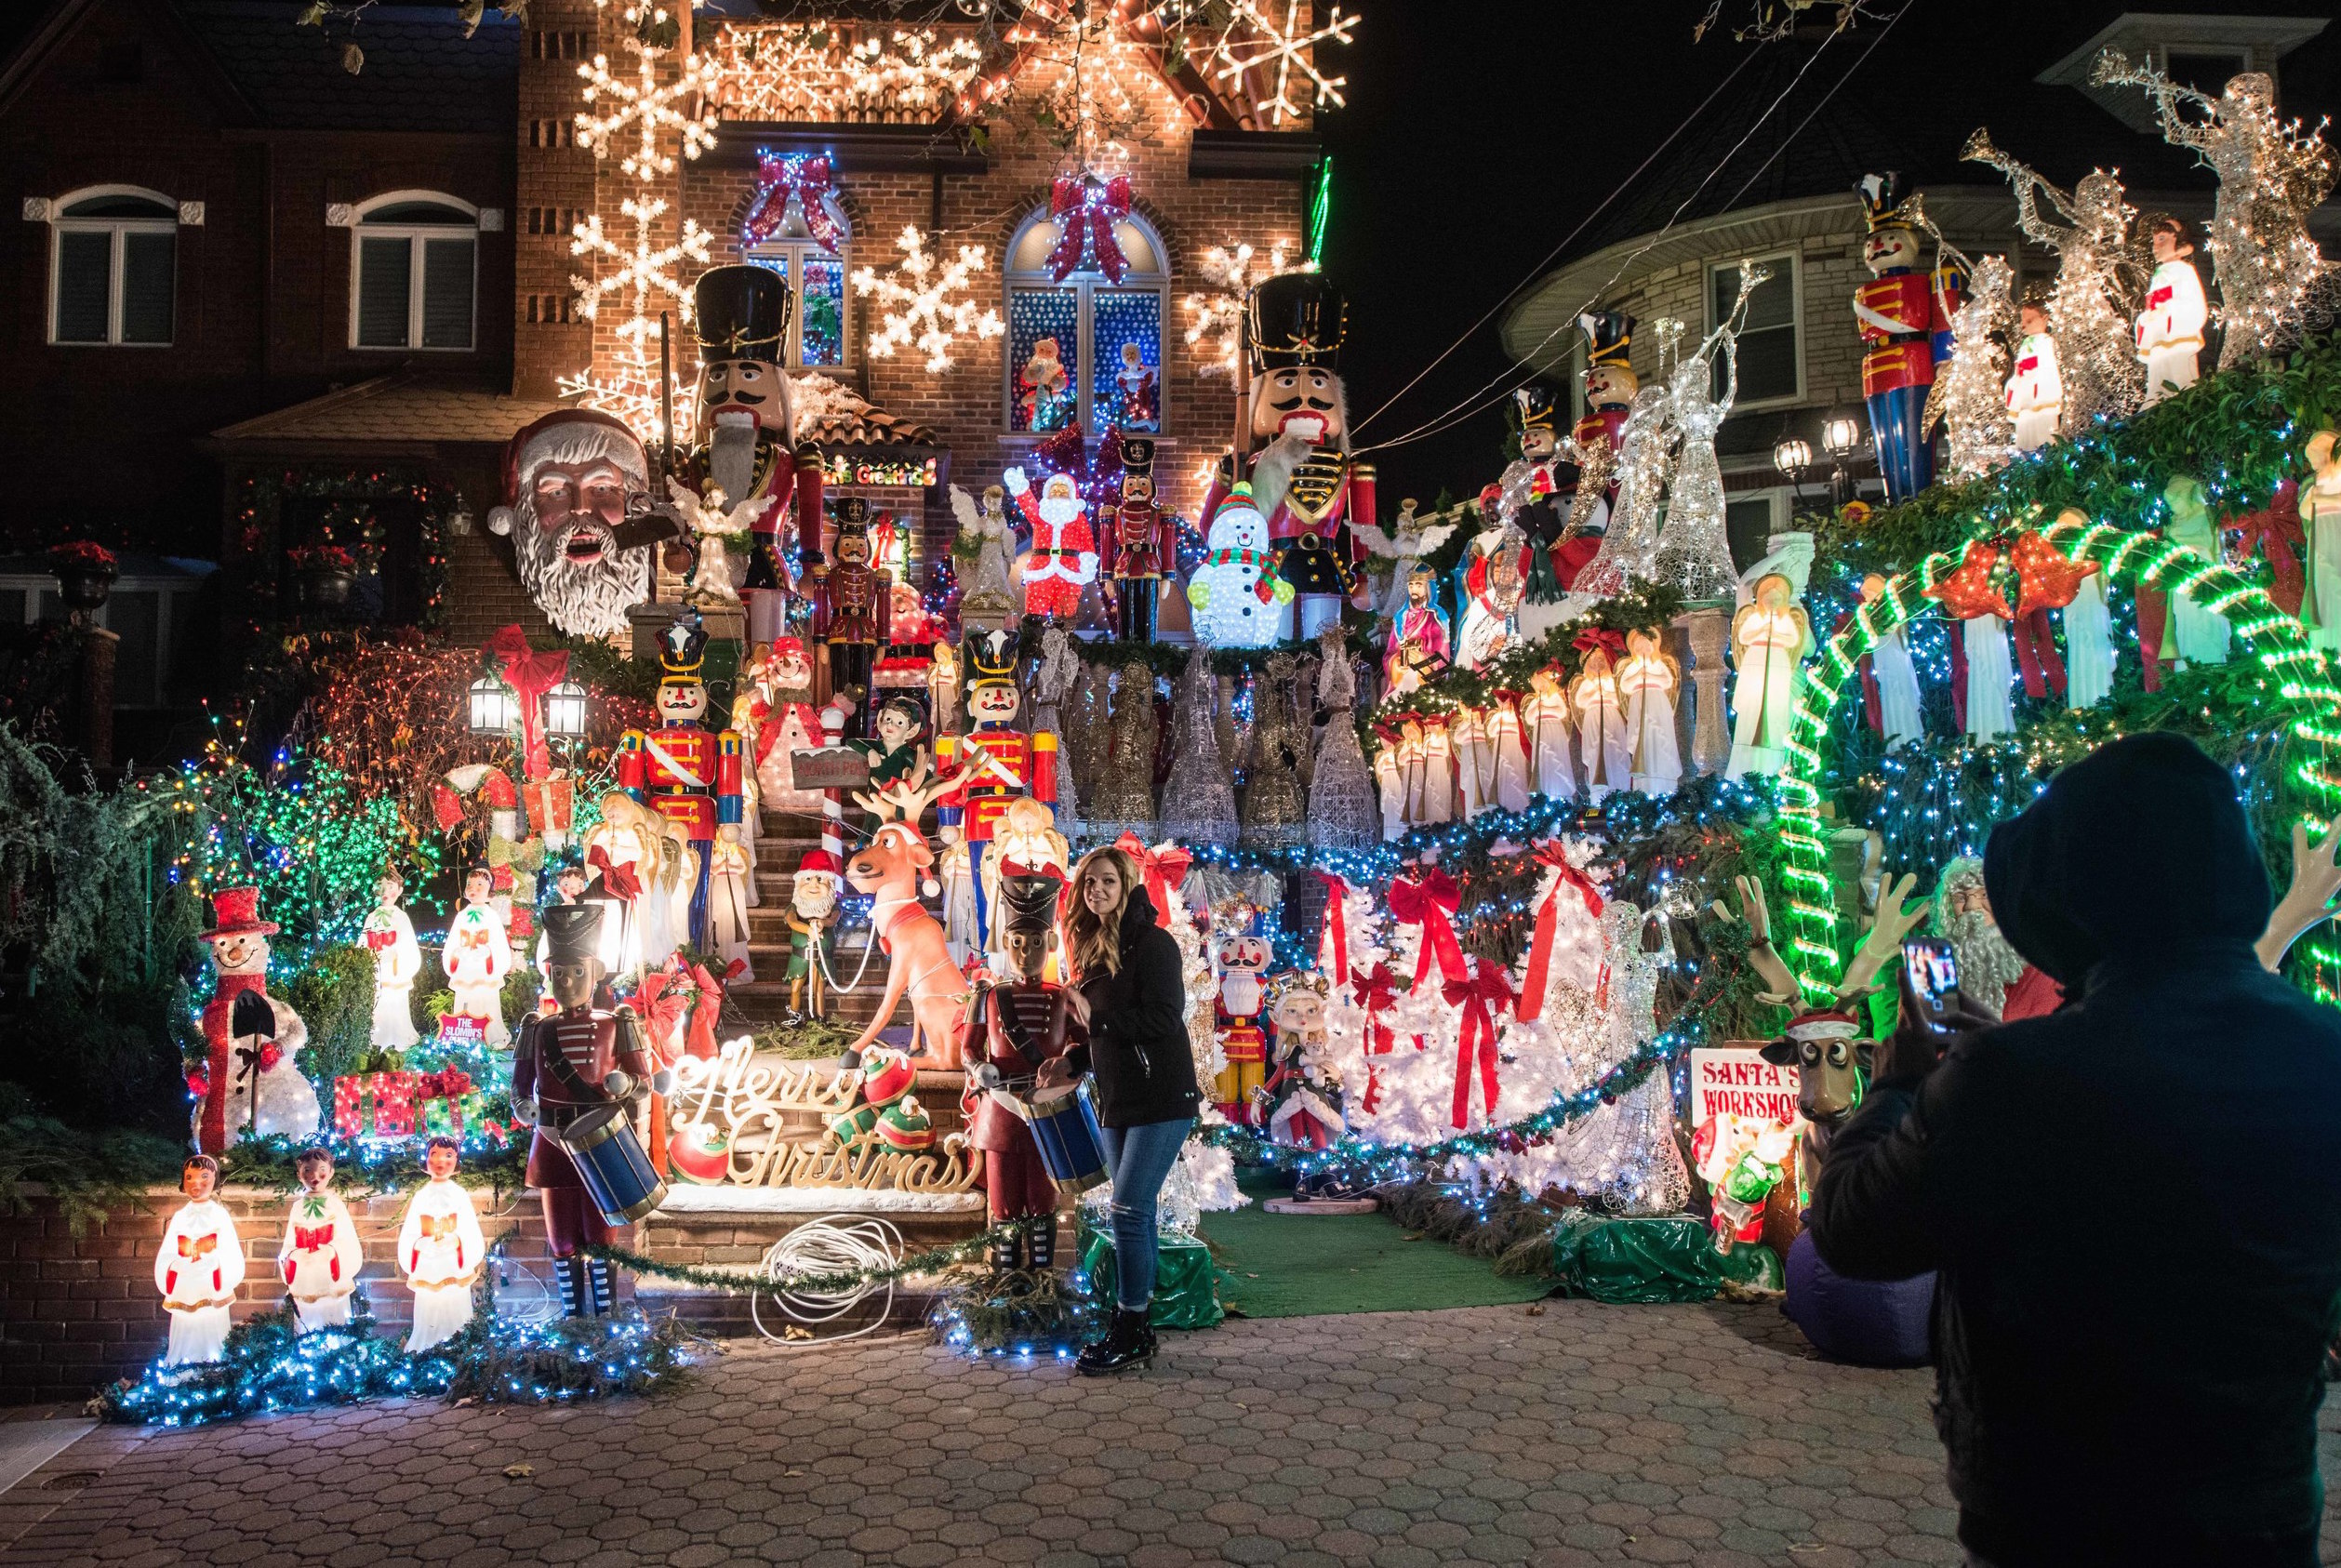 dyker heights christmas lights 2018 guide including tours - Professional Christmas Decorators Cost